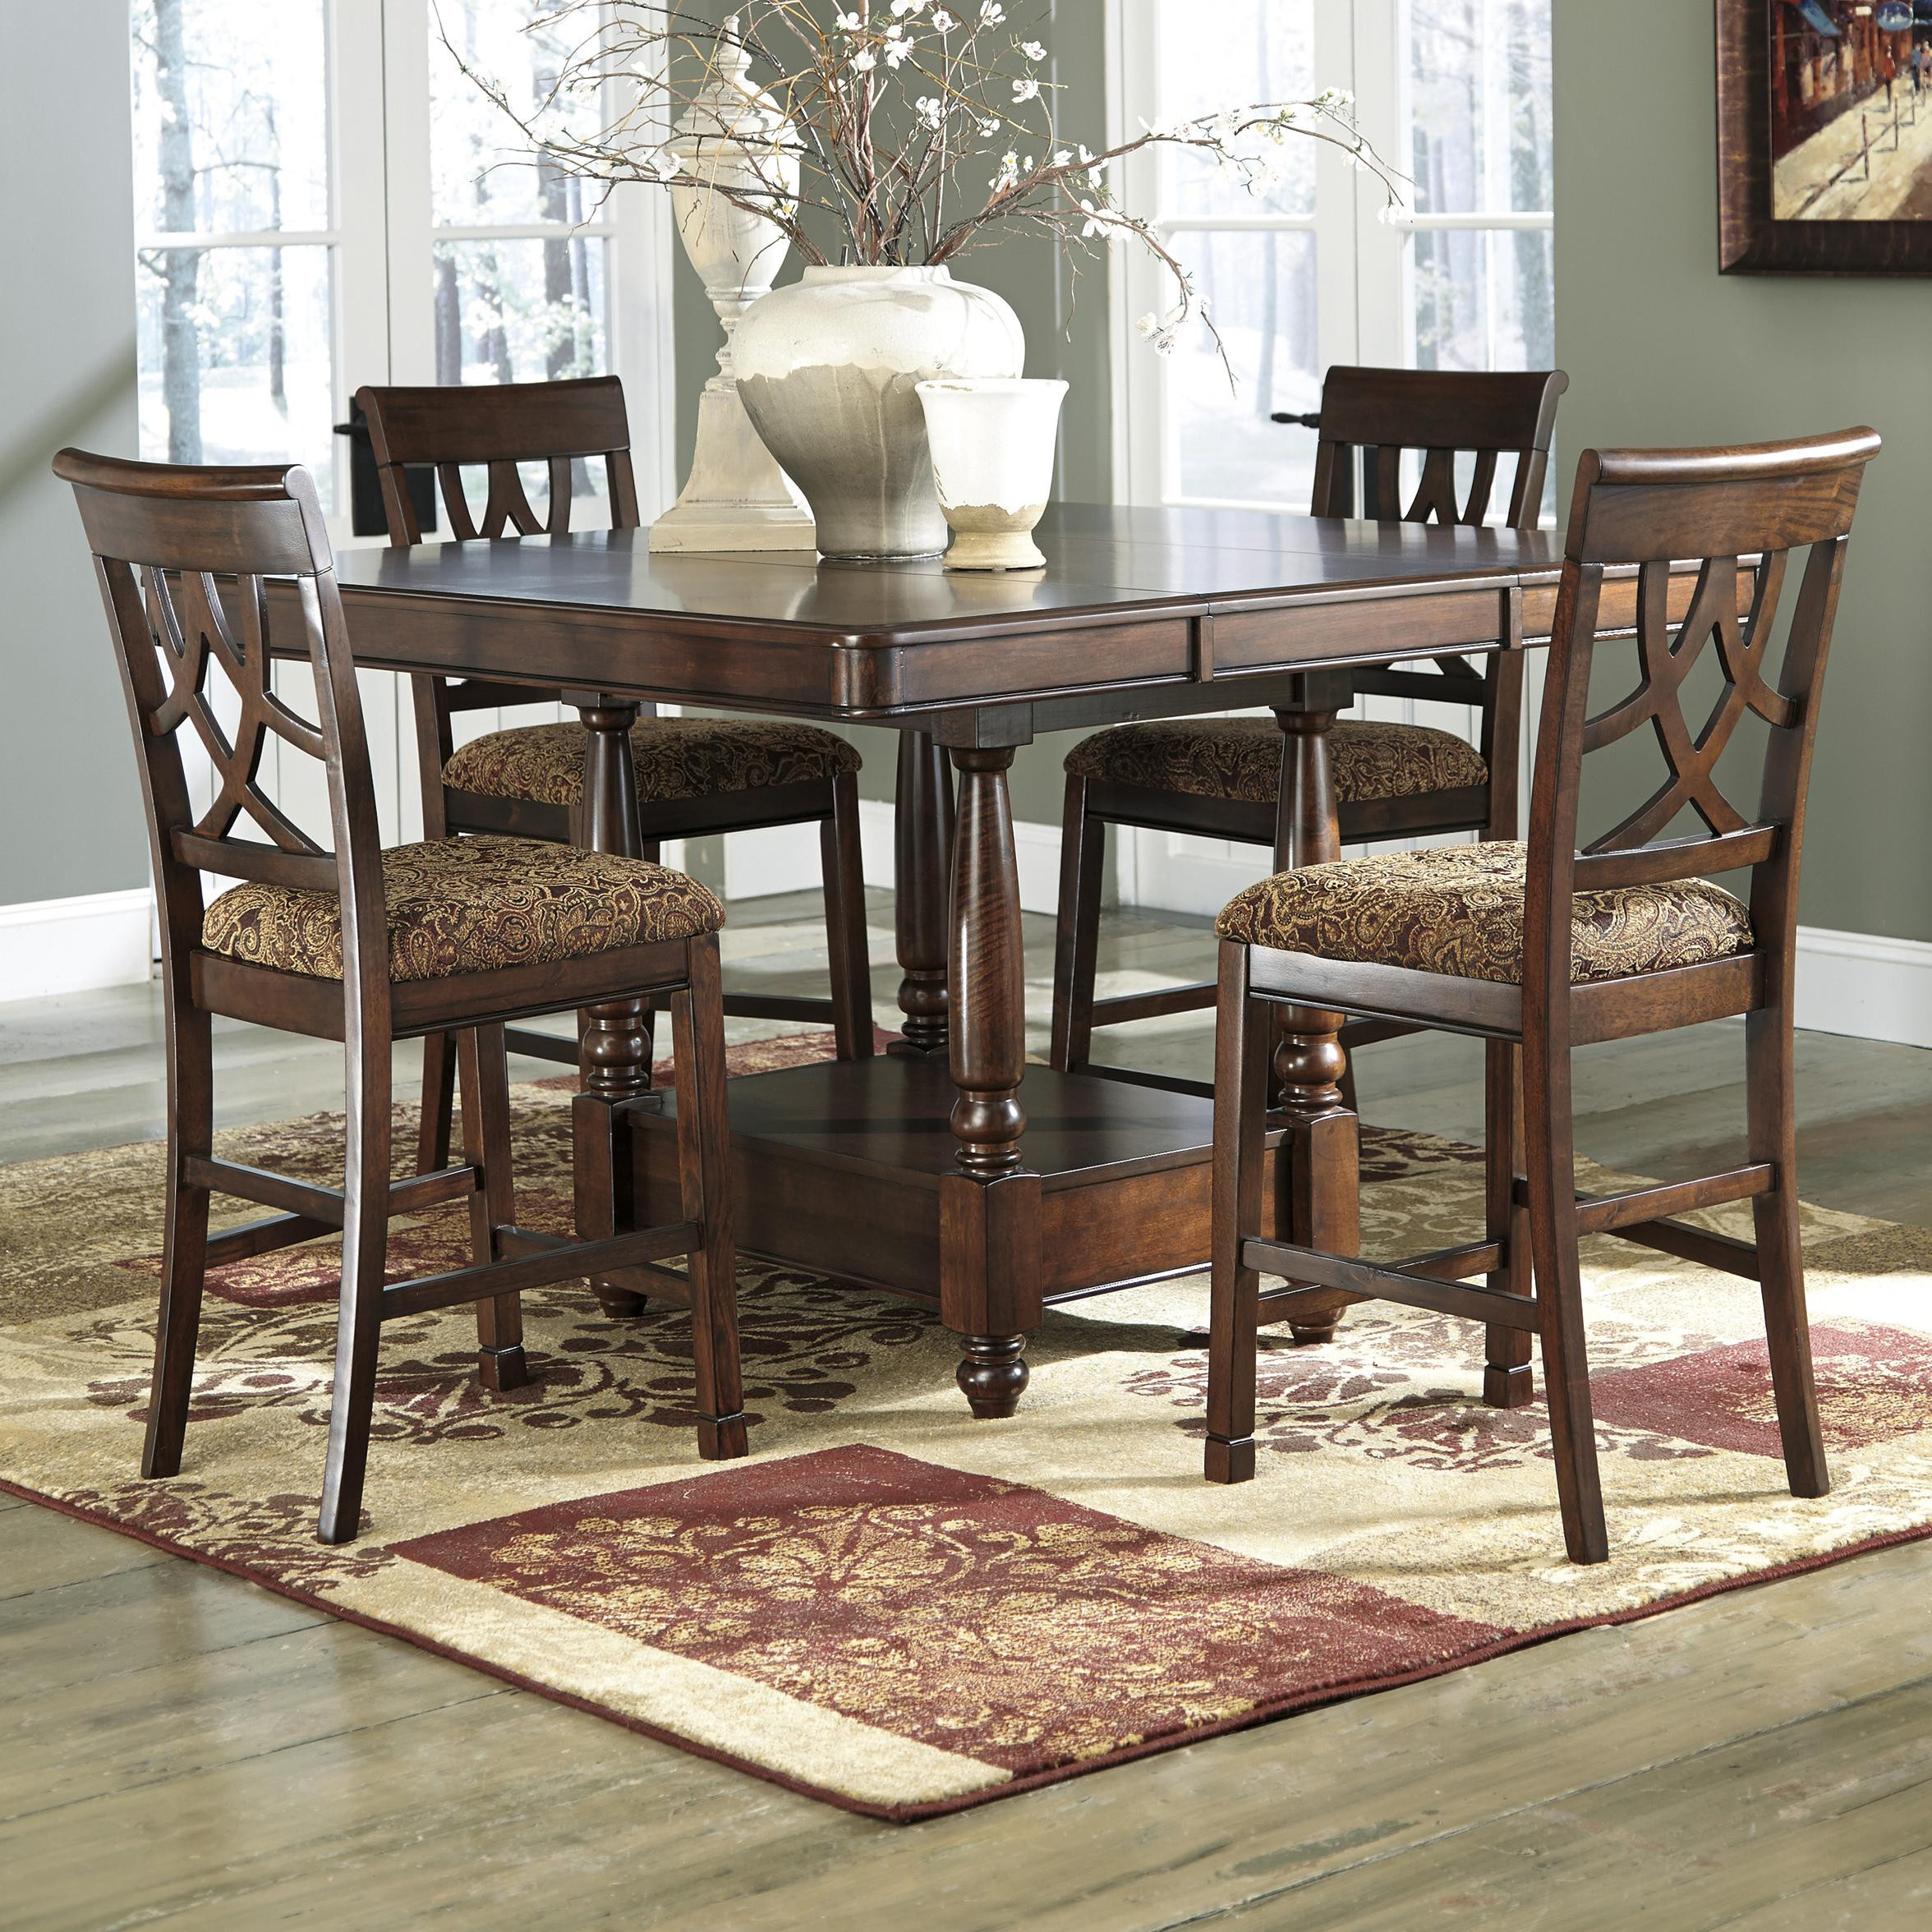 Best ideas about Ashley Furniture Dining Sets . Save or Pin Signature Design by Ashley Leahlyn 5 Piece Cherry Finish Now.